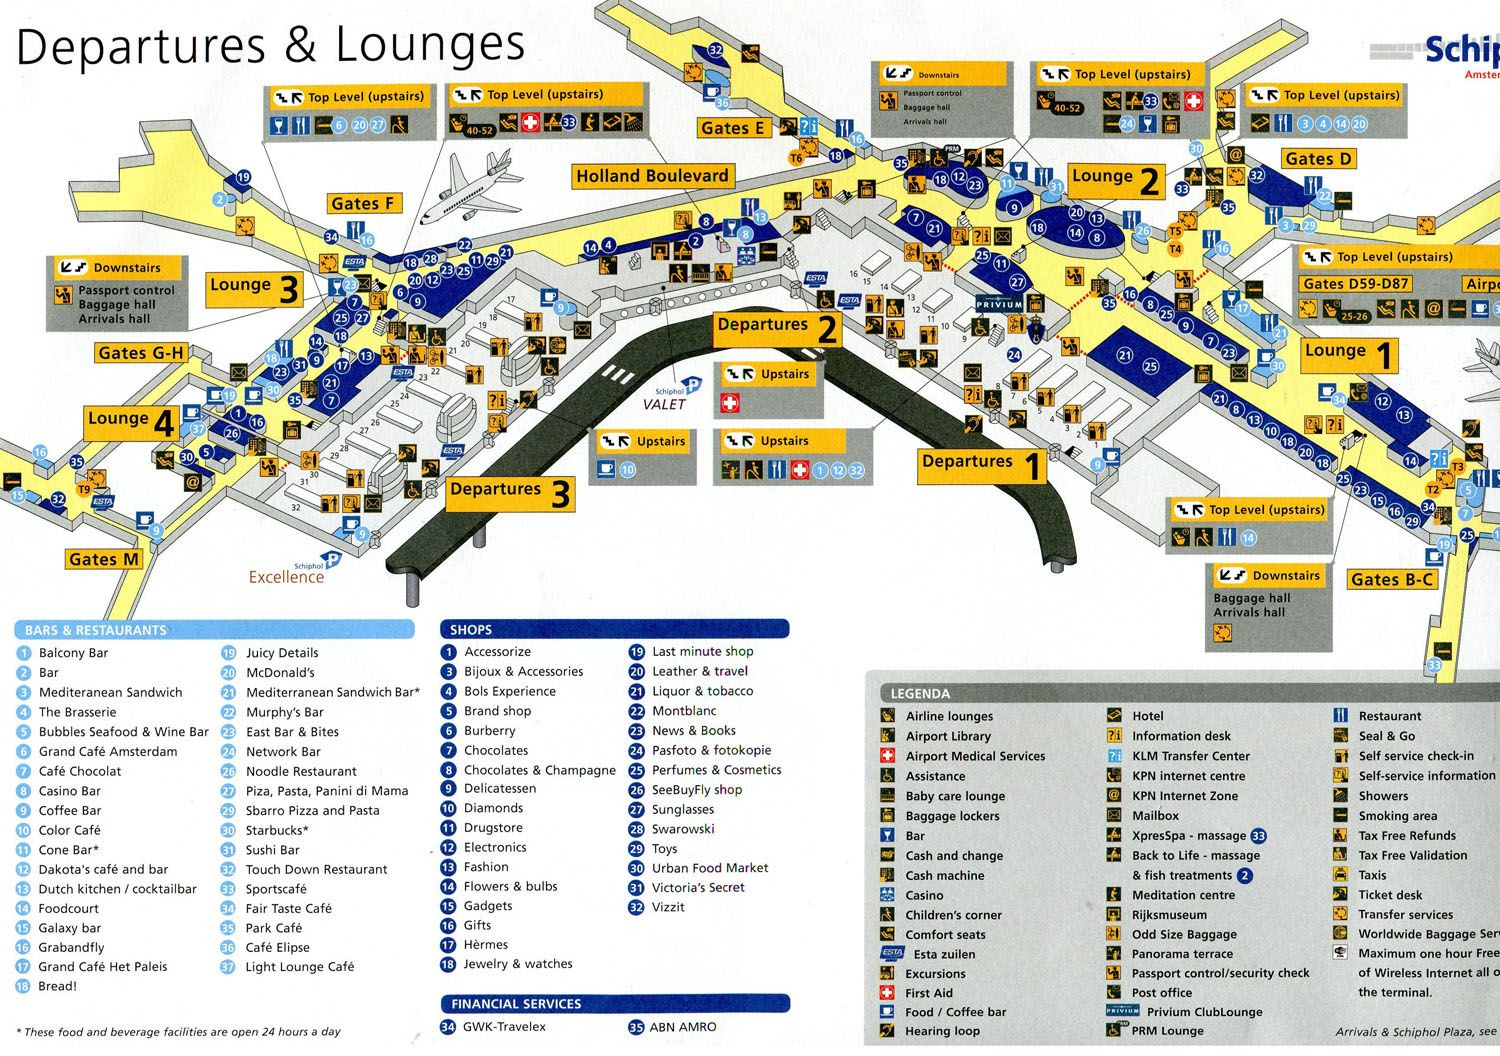 schiphol airport gate map Amsterdam Airport Map Airport Terminal Map Dining And Shopping schiphol airport gate map